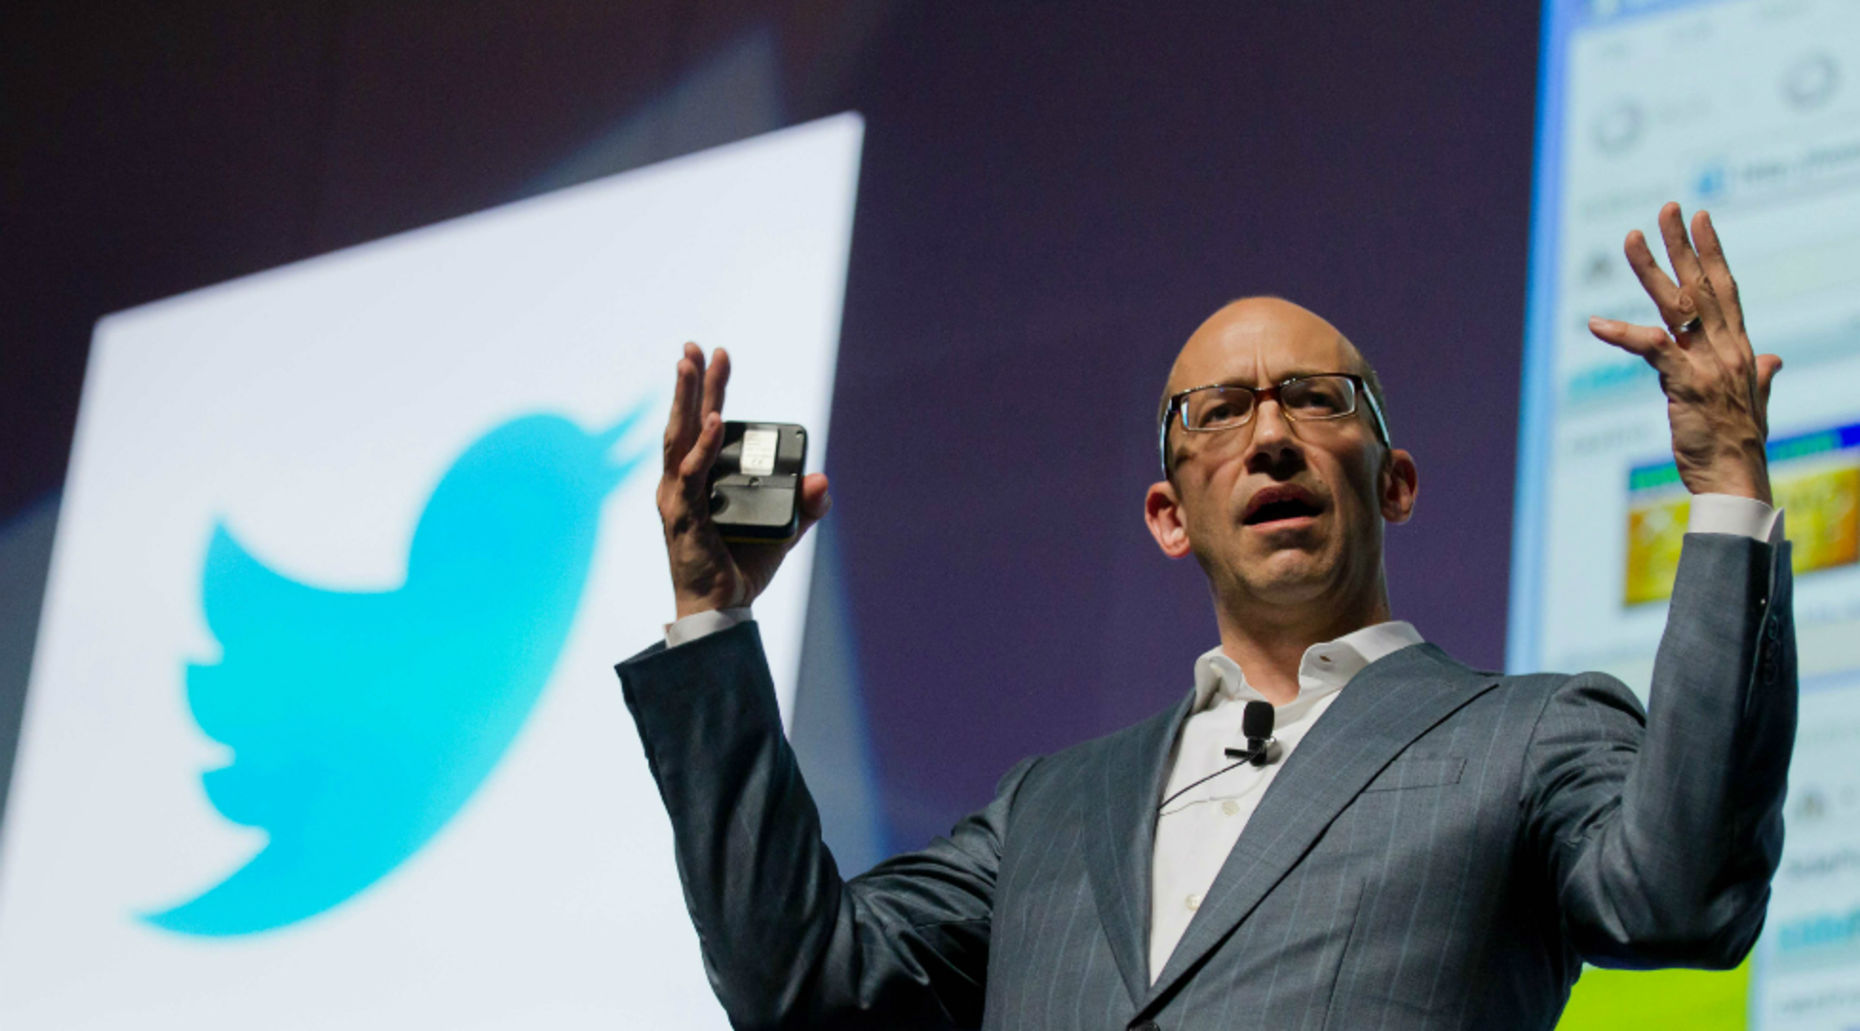 Twitter CEO Dick Costolo. Photo by Bloomberg.